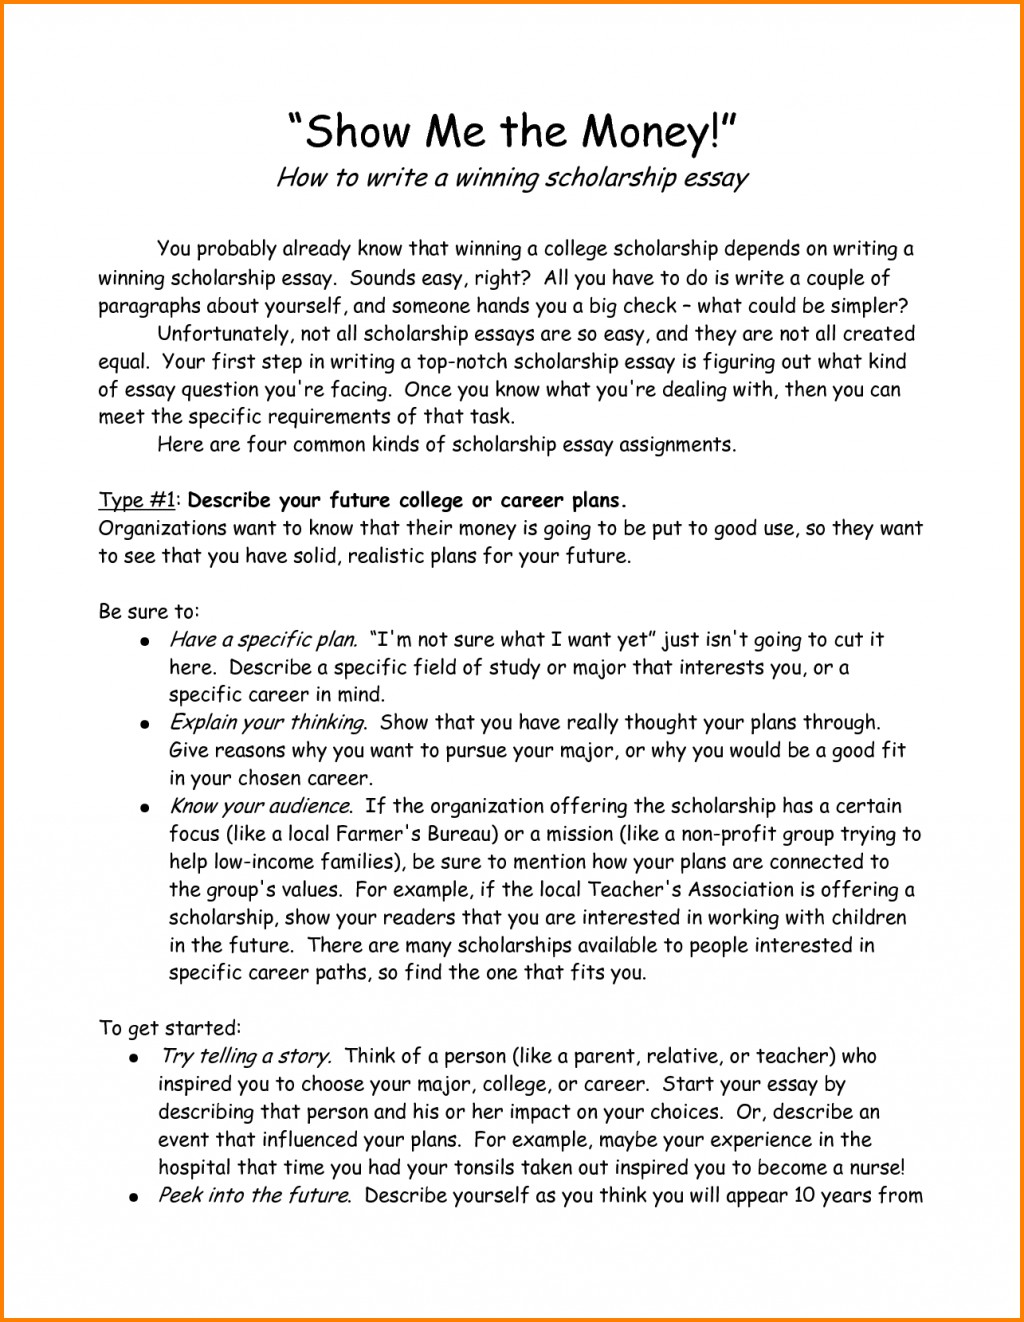 004 Good Ways To Start An Essay Example How Scholarship Letter Template Word Best Way Write College L Fascinating Funny About Yourself Introduction A Book University Large